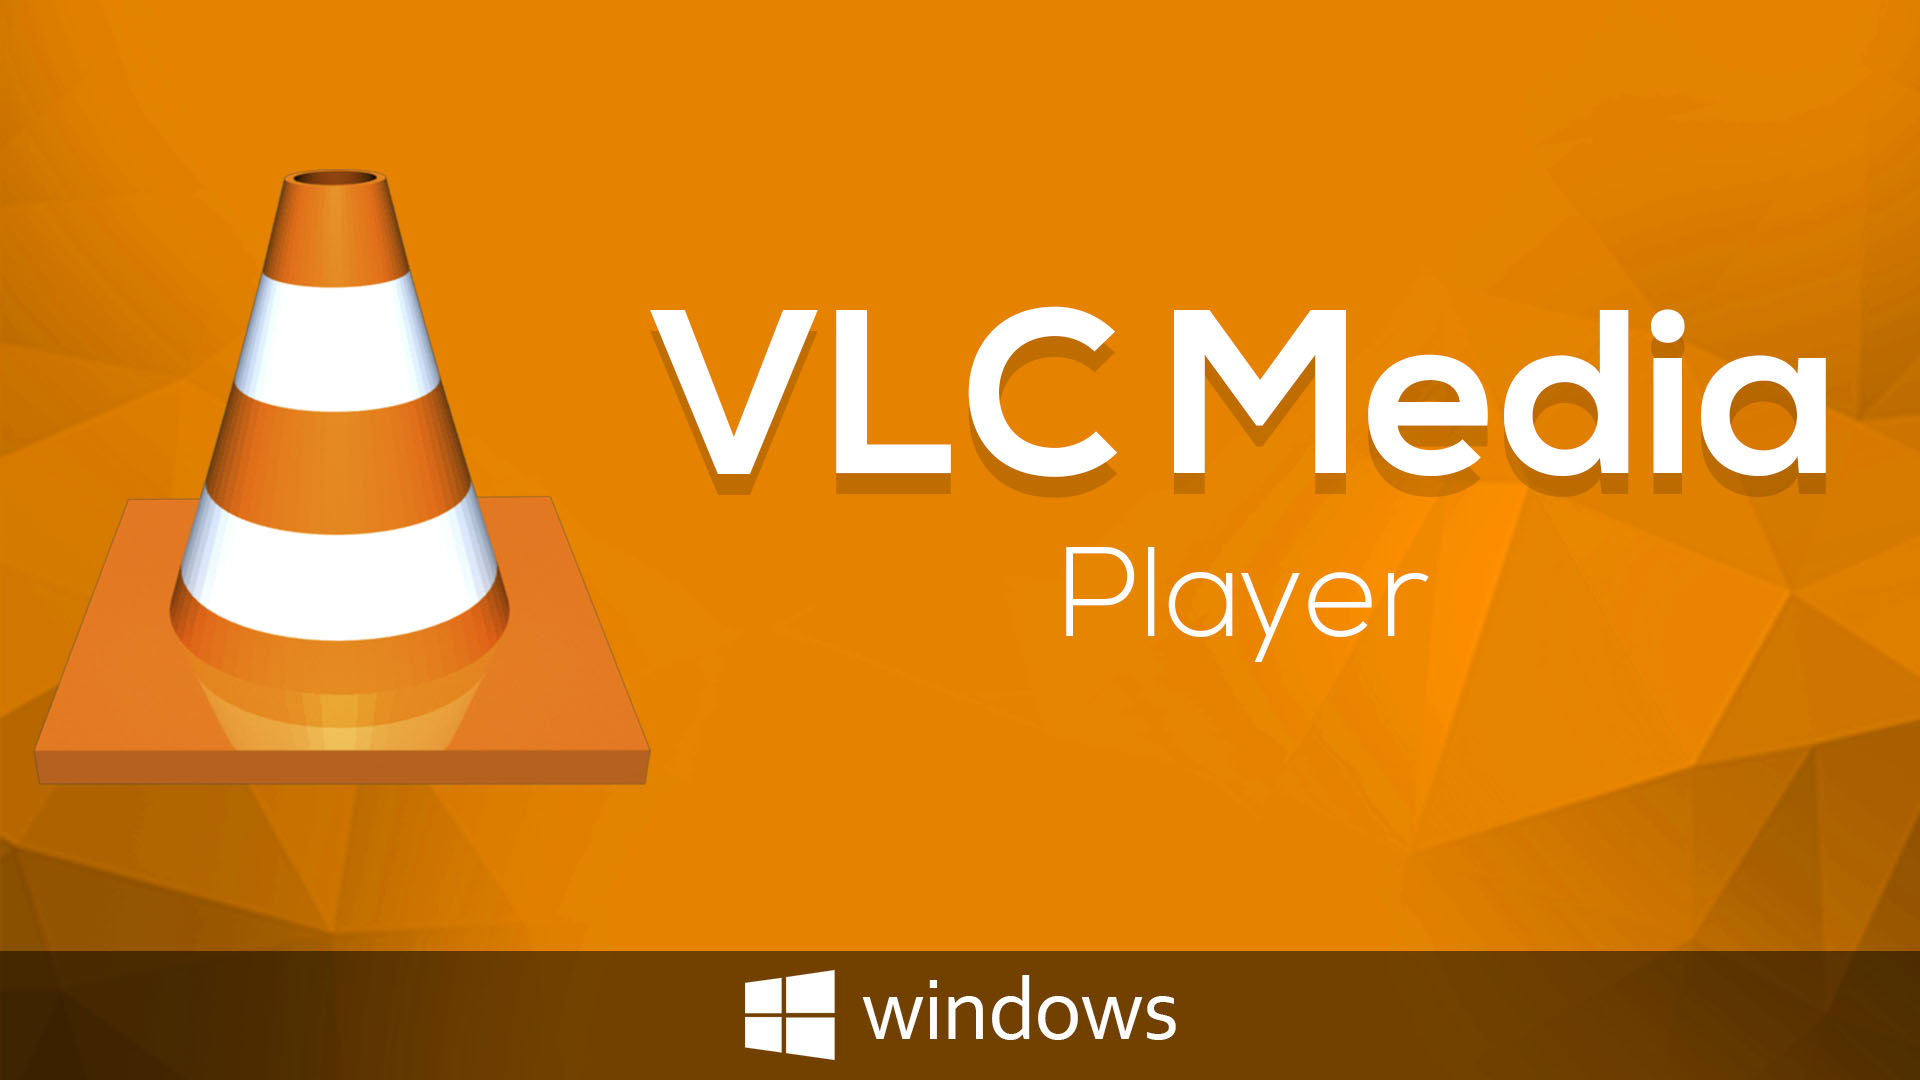 VLC is easily the best media player for PC you can find. It is much better than Microsoft's Media player and VLC support almost all Video formats.